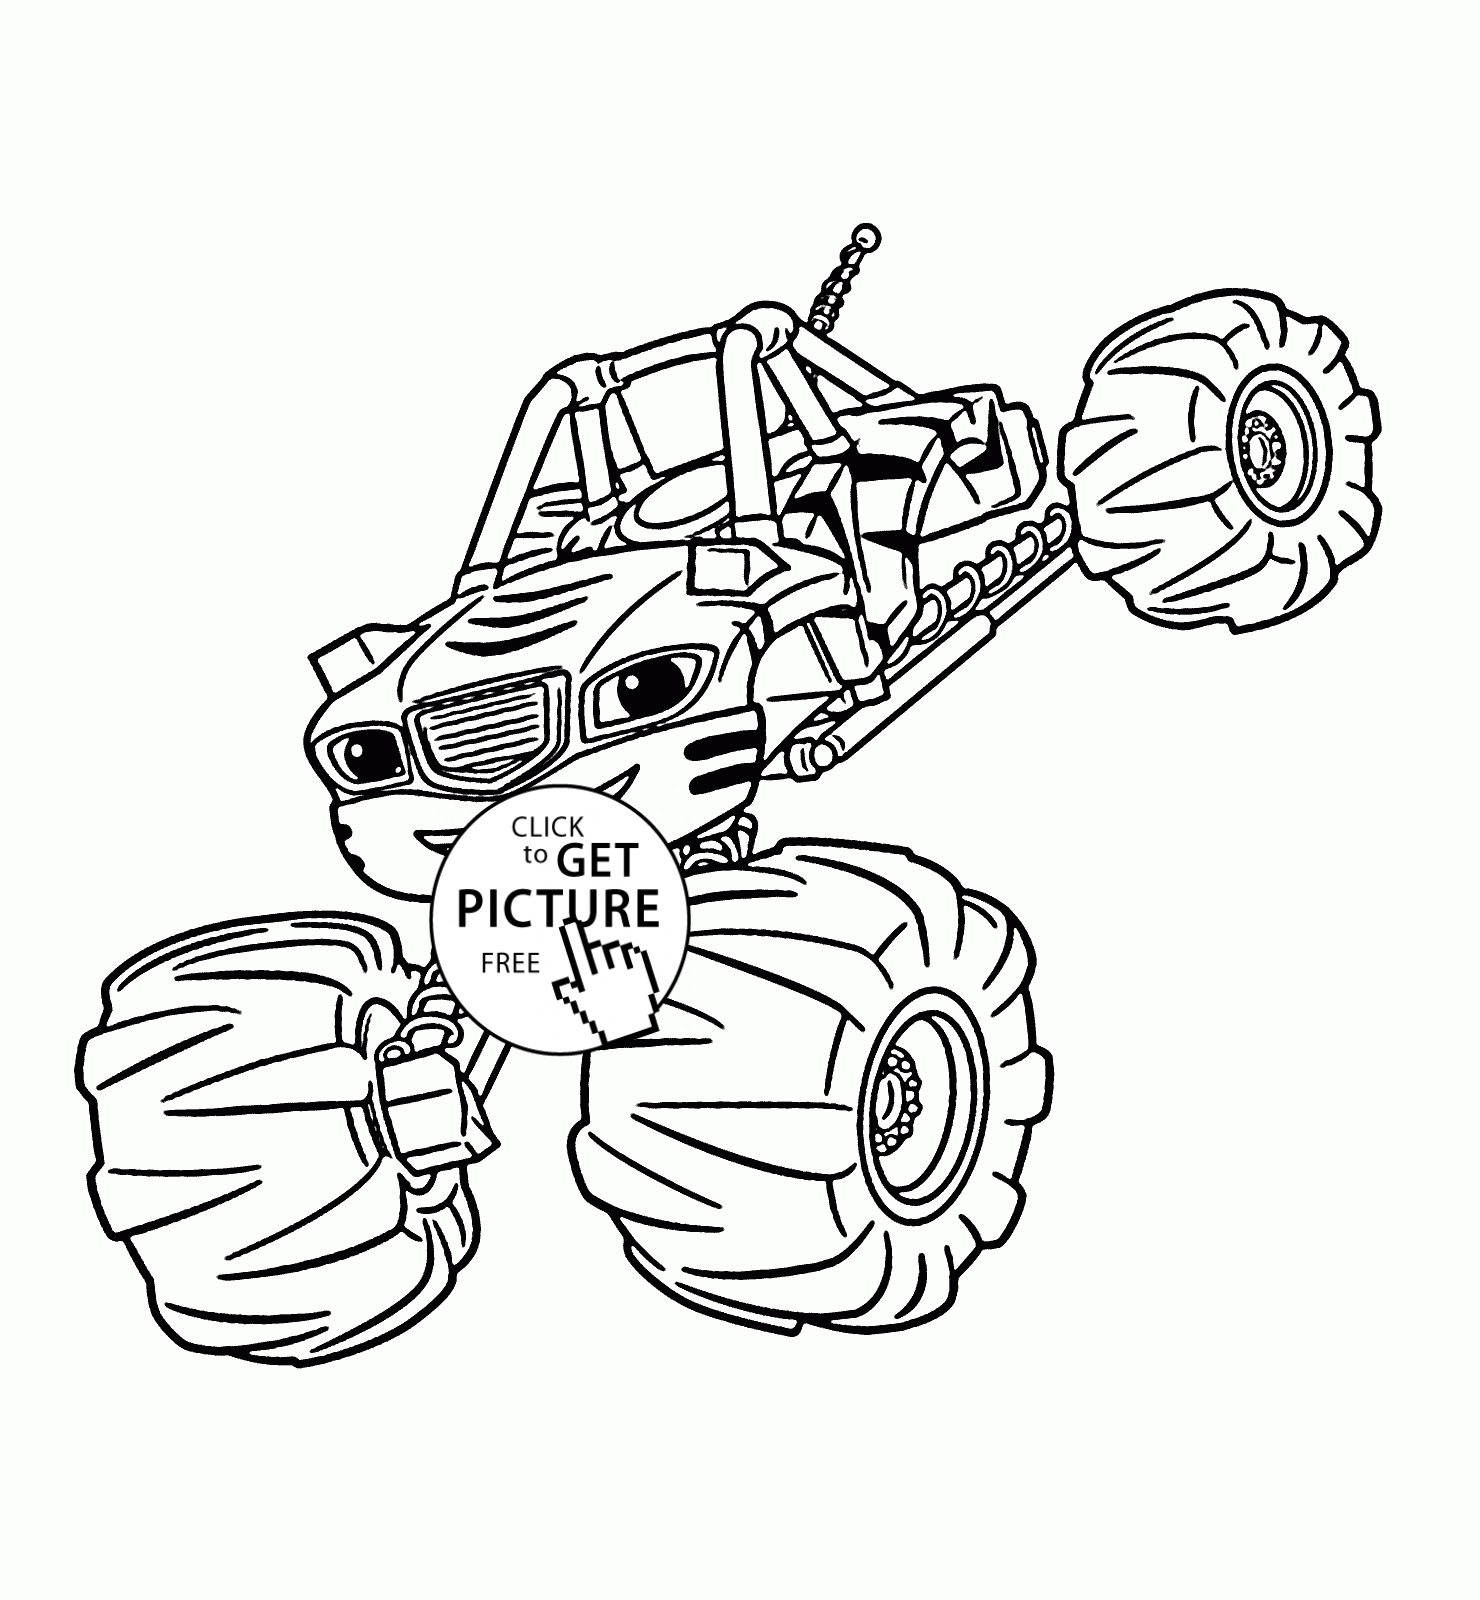 Blaze Coloring Pages to Print  Download 9d - Save it to your computer